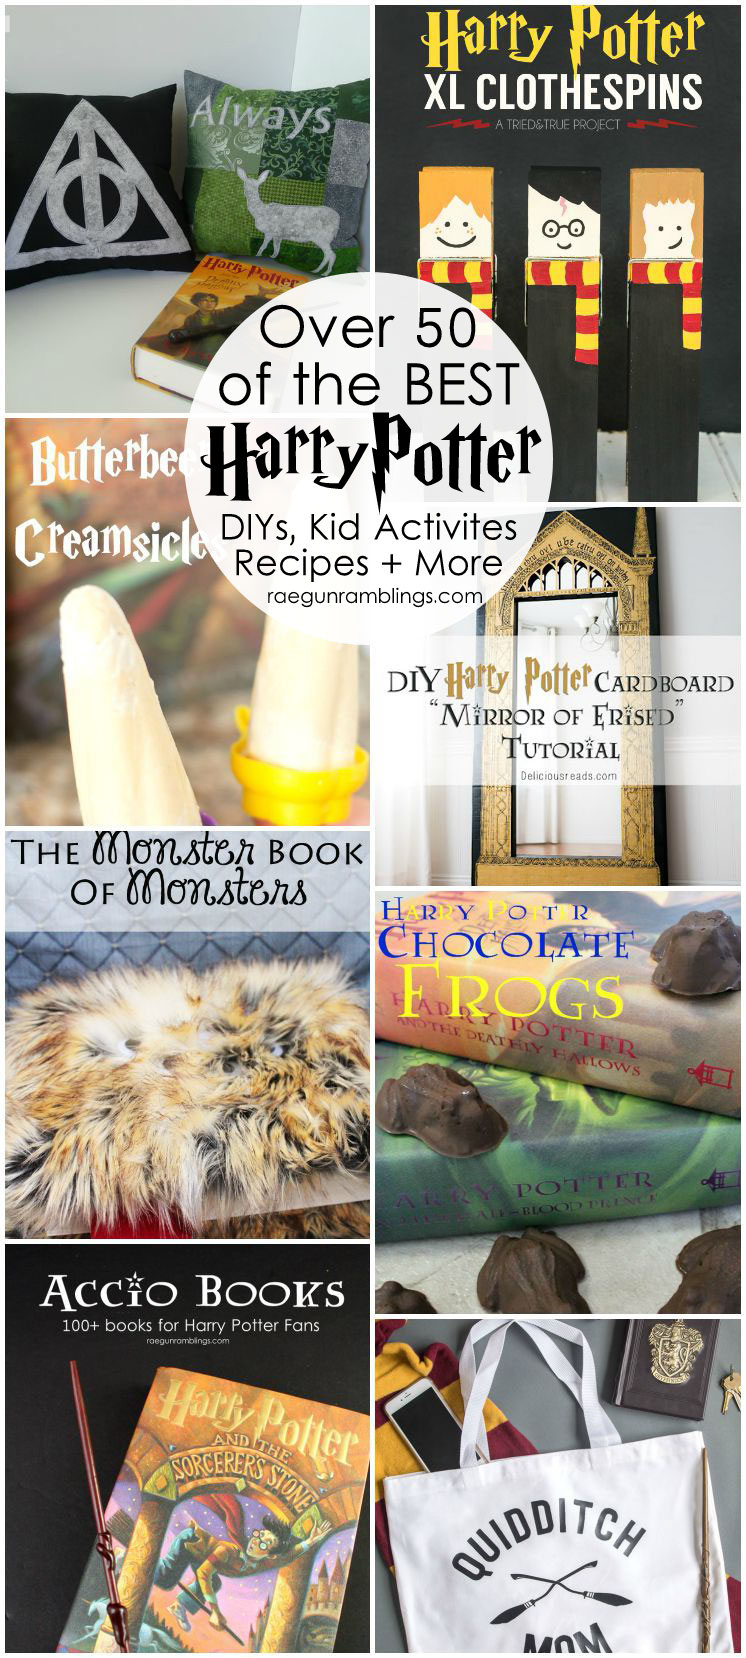 Over 50 awesome harry potter projects rae gun ramblings hands down the best harry potter crafts diys tutorials recipes and more solutioingenieria Image collections